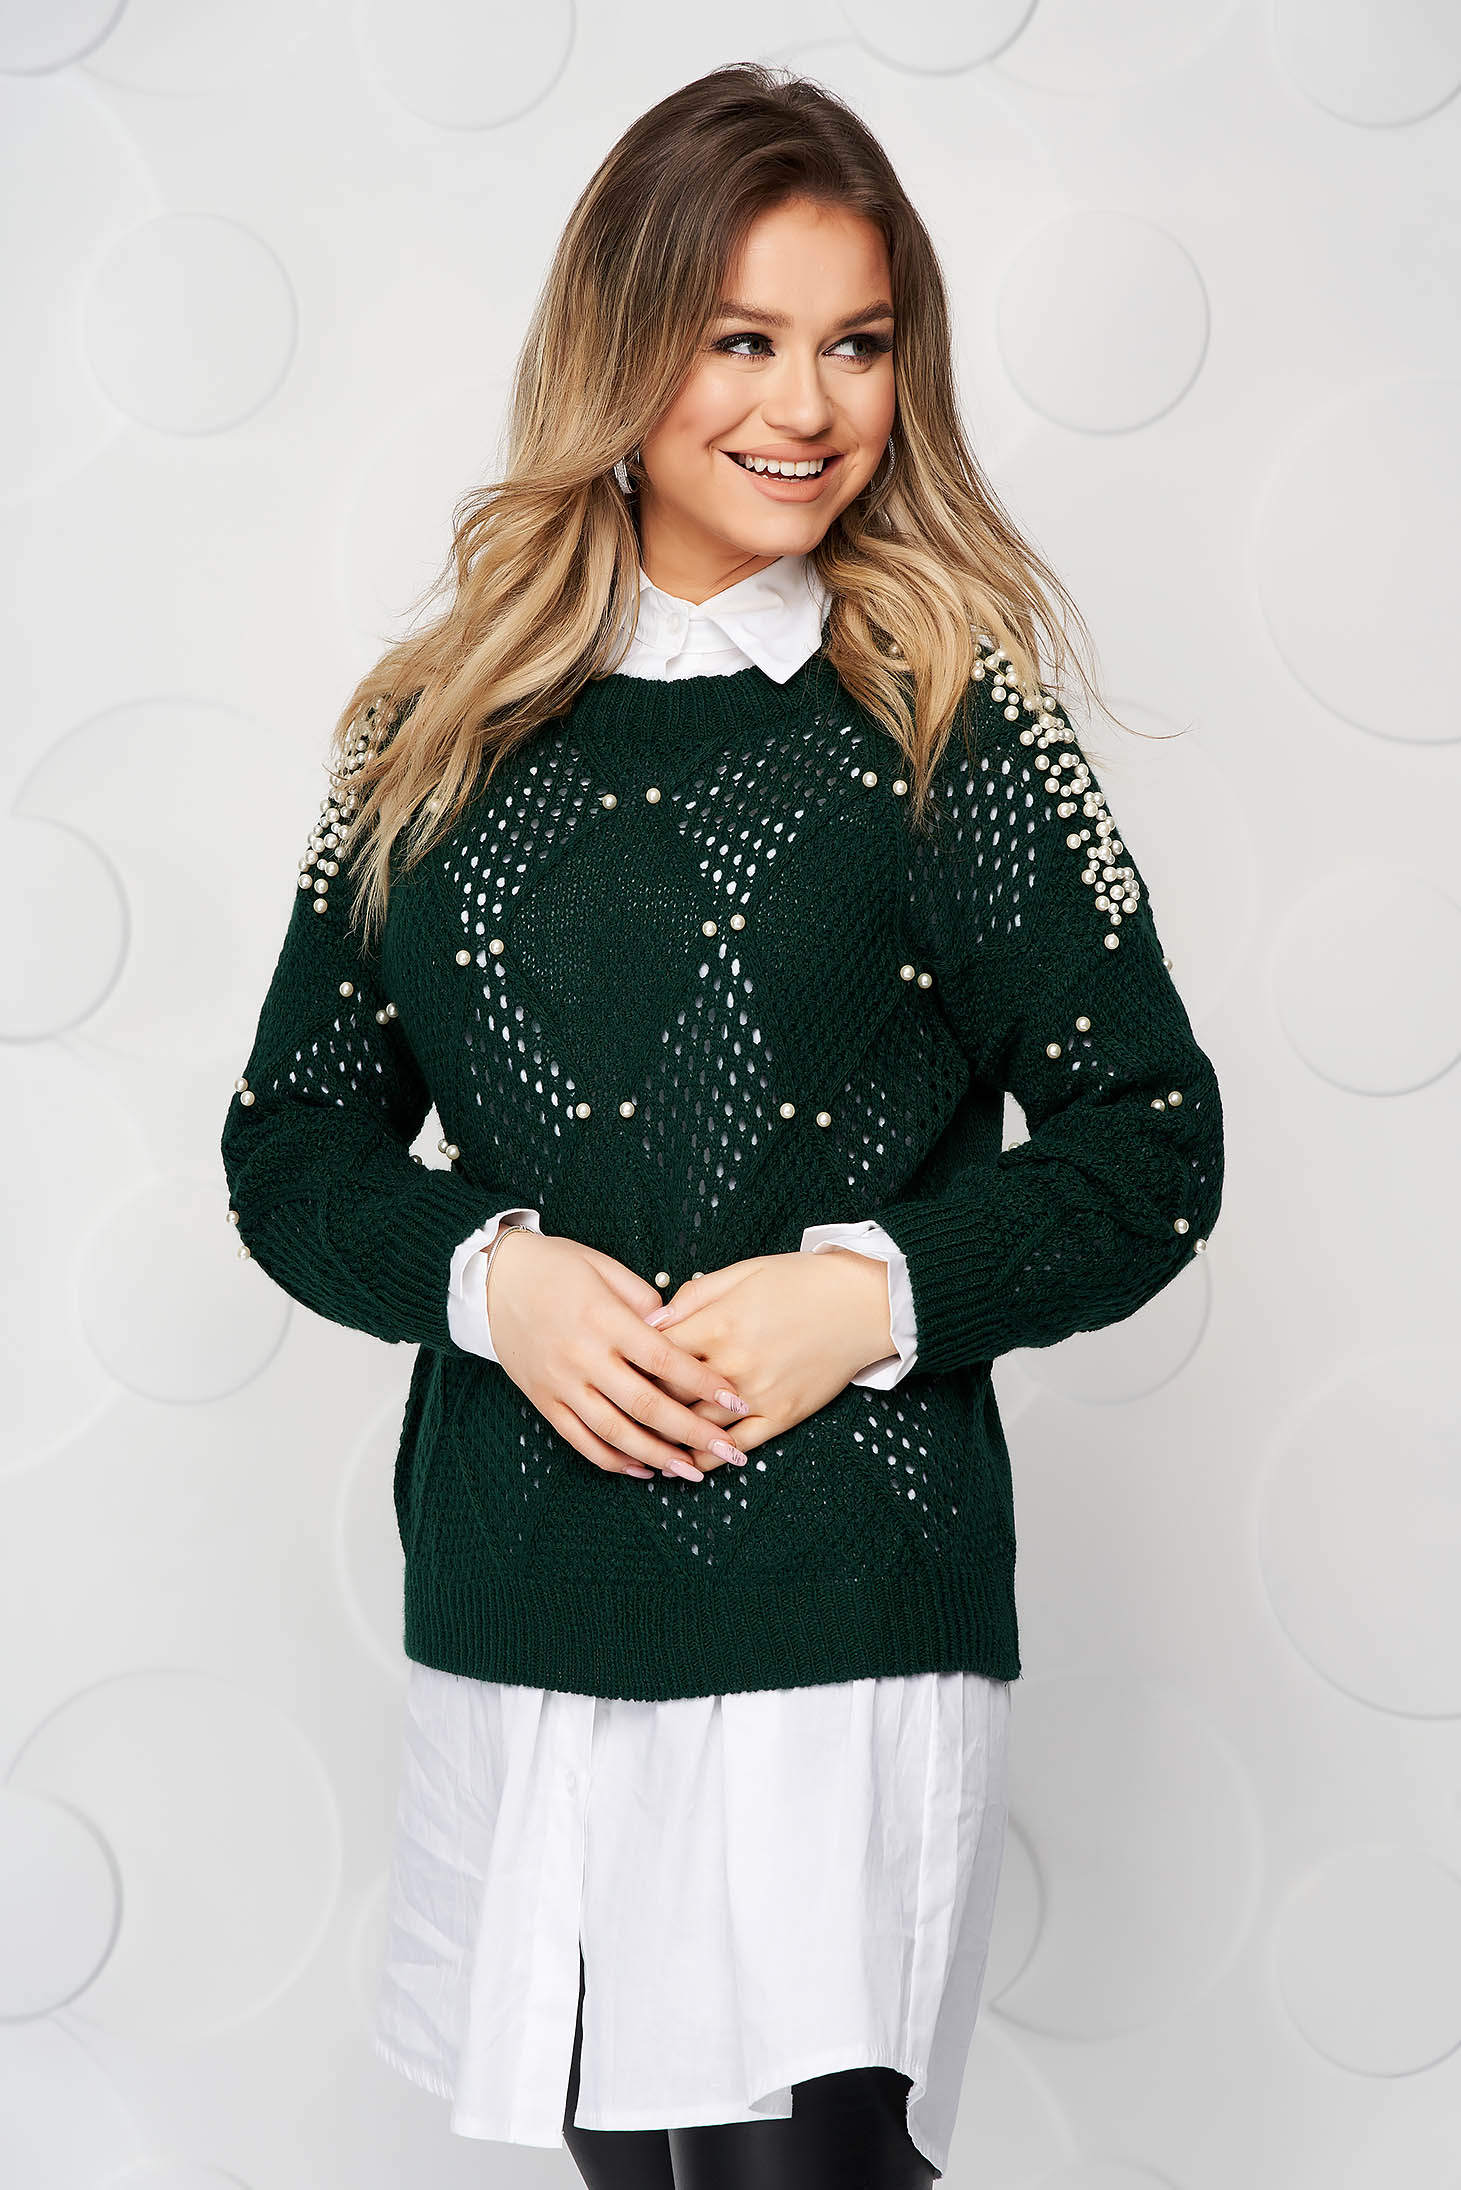 Green sweater casual knitted flared with pearls